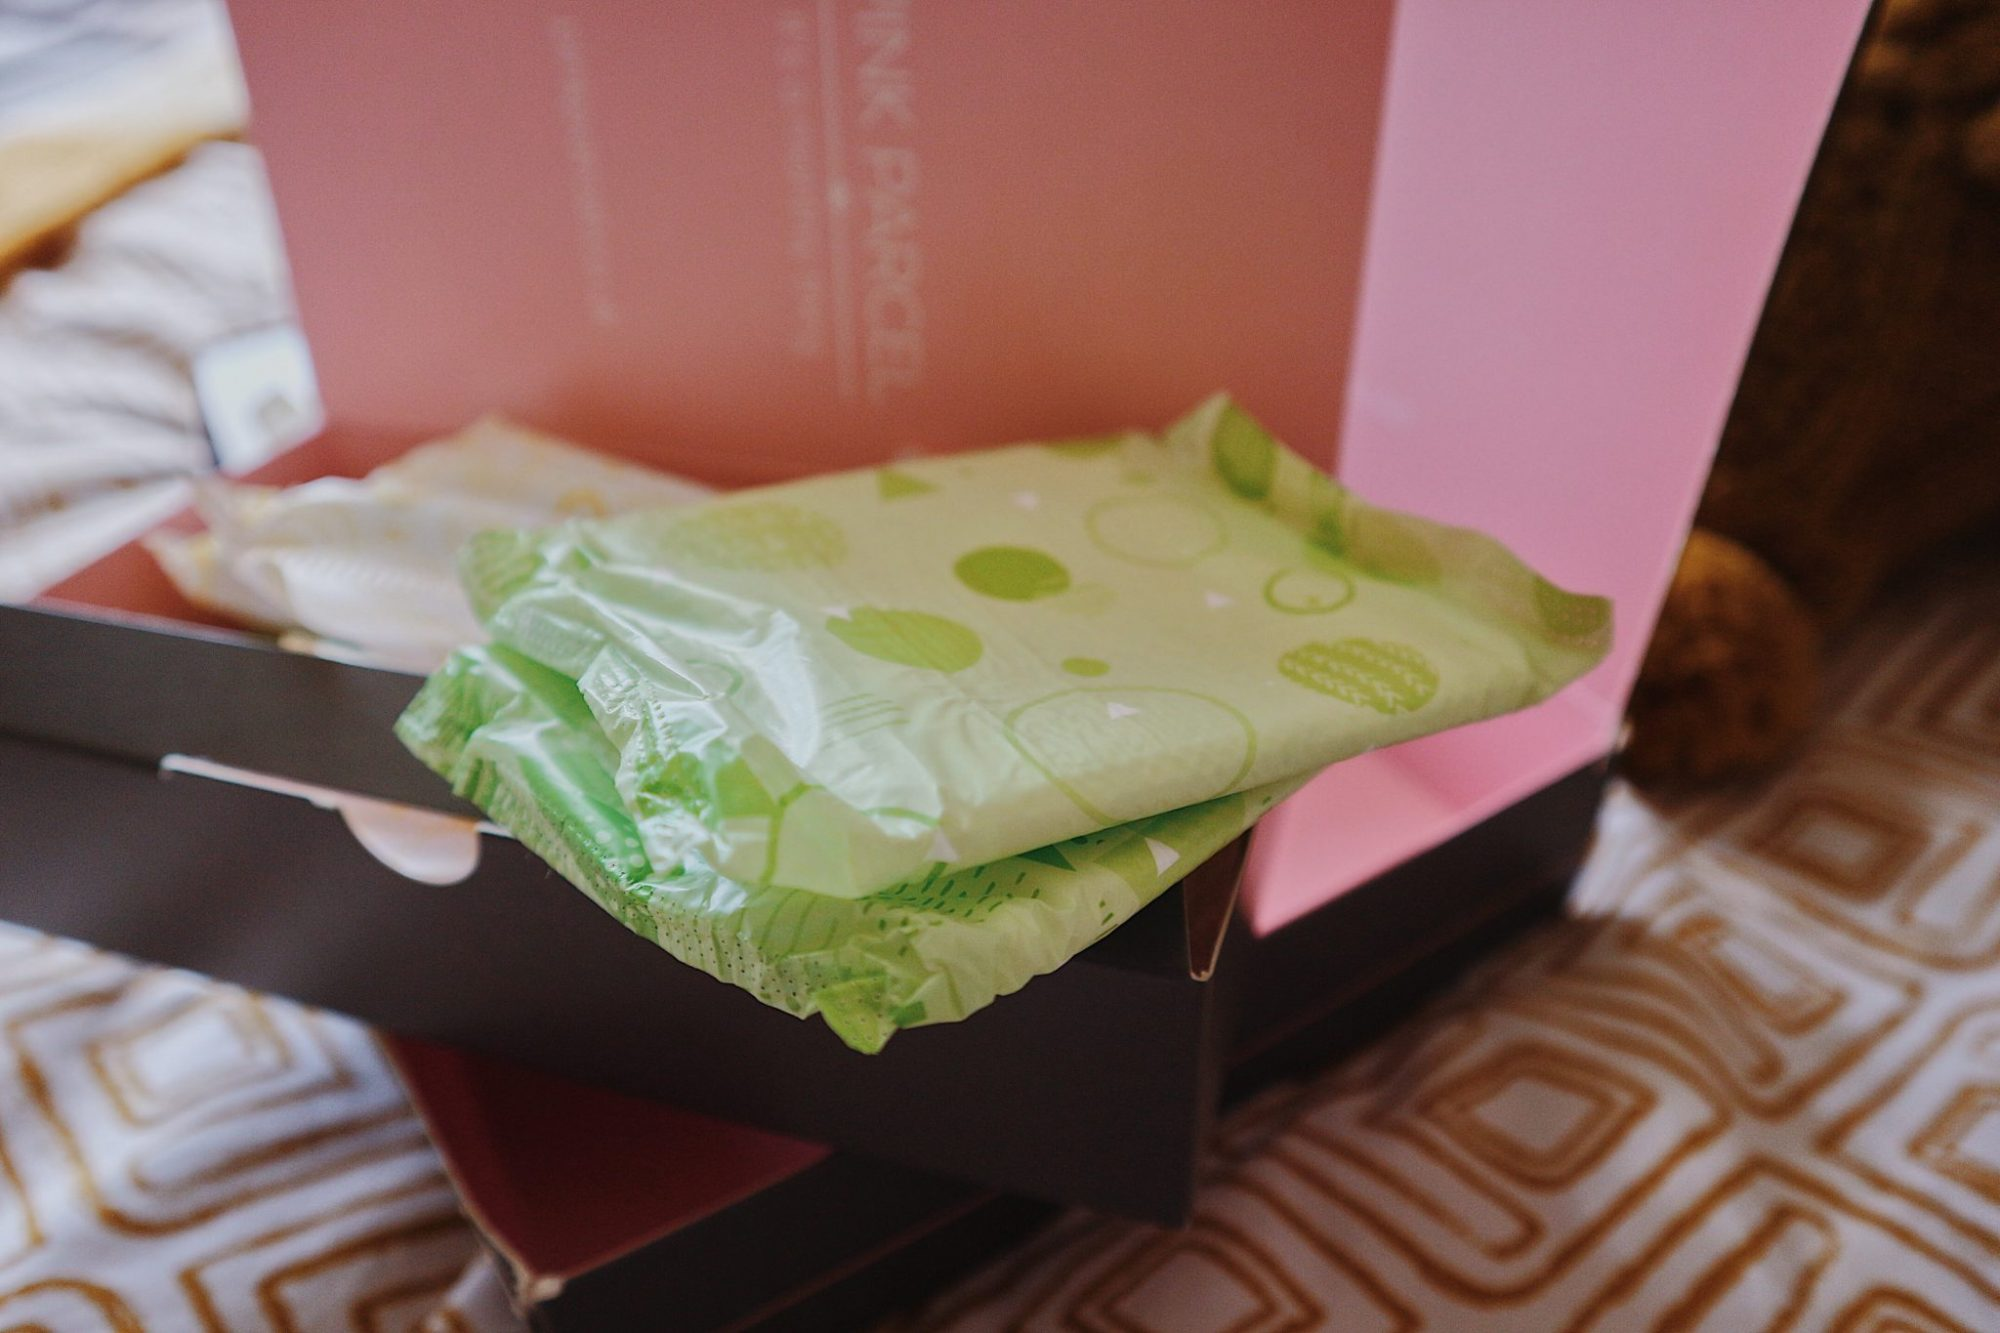 Pink Parcel Period Subscription Box Daytime Pads